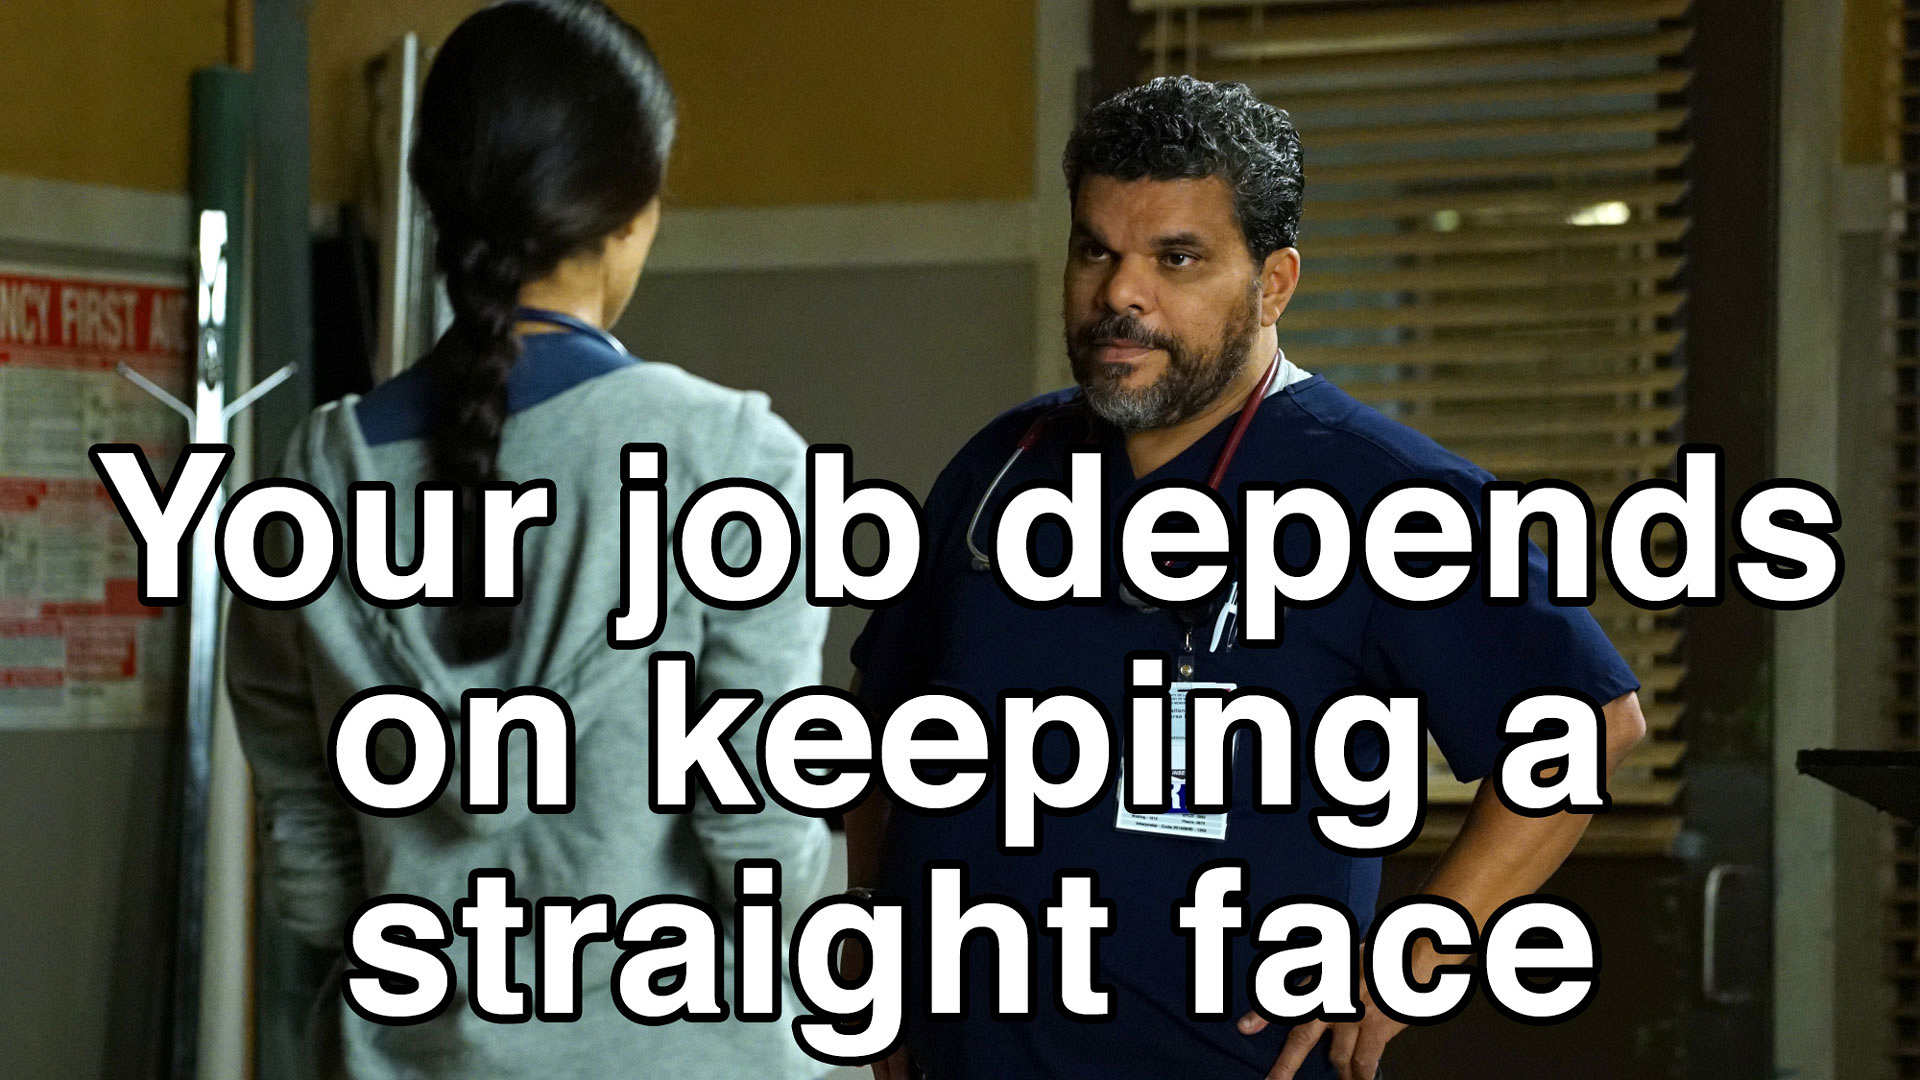 Your job depends on keeping a straight face